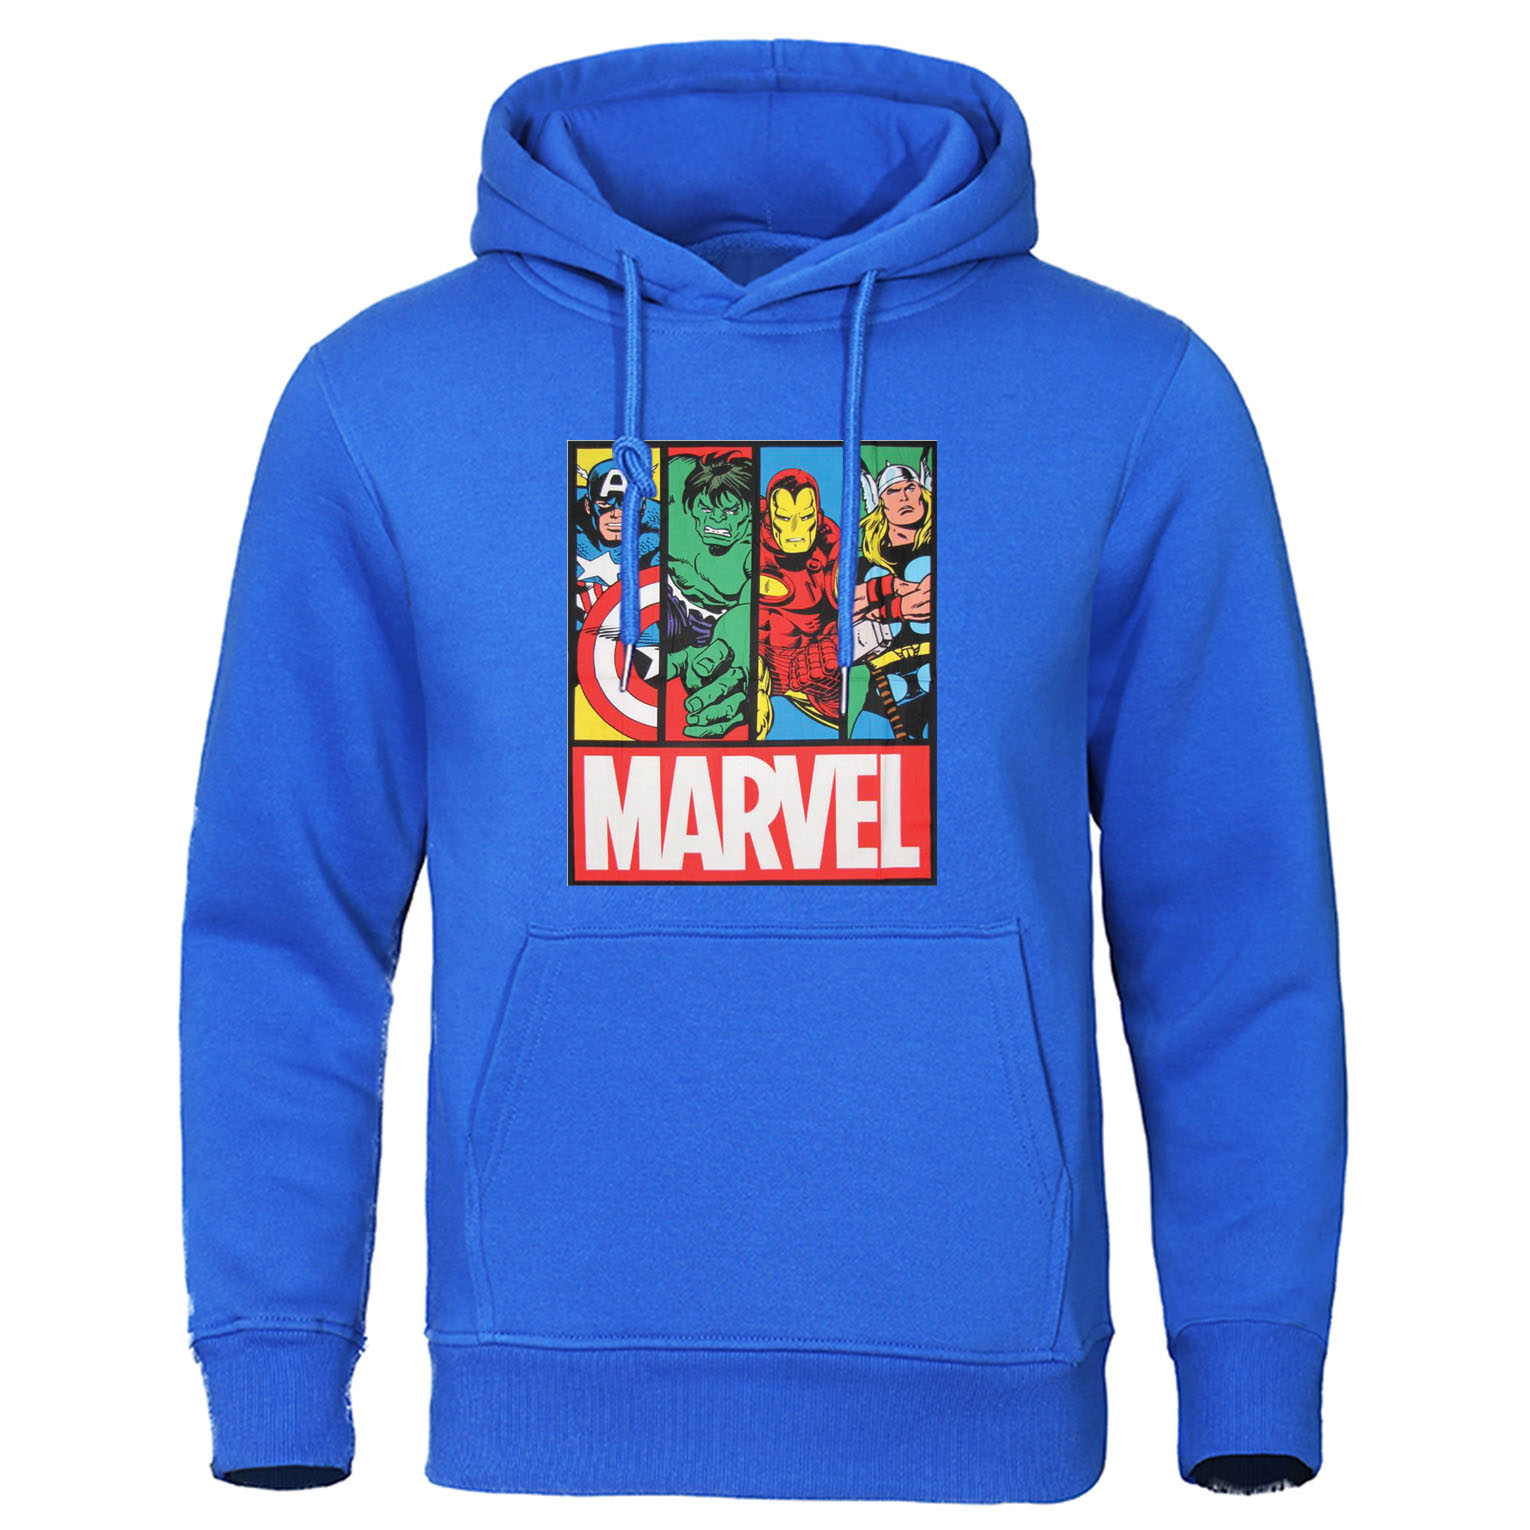 Marvel Sweatshirt Streetwear Autumn Winter Male Hoody The Avengers Men Casual Pullover Superhero Tracksuit Brand Mens Hoodies